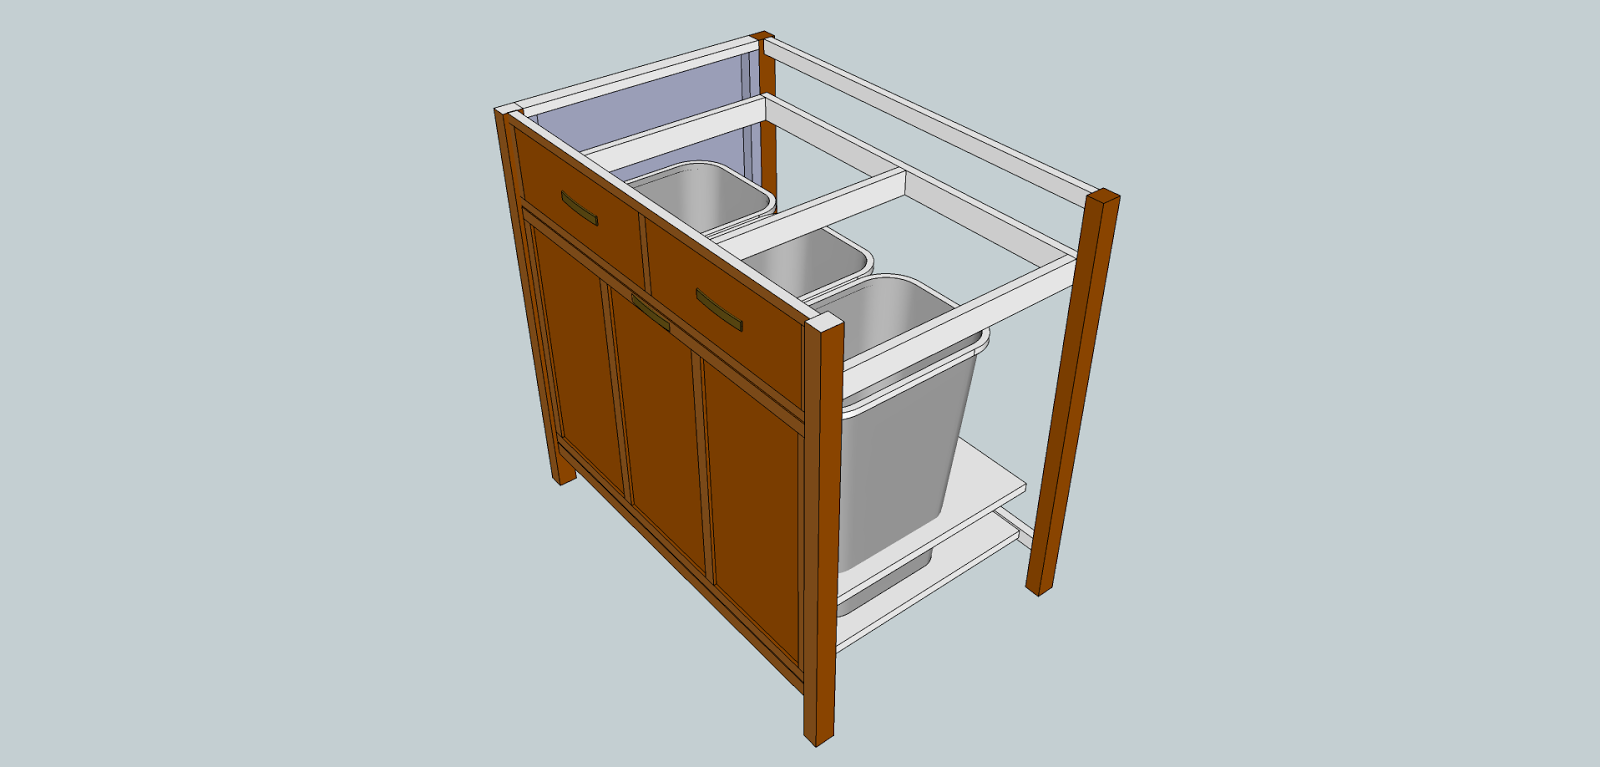 Fine Wood Finishing: Sketchup and Cabinet Design